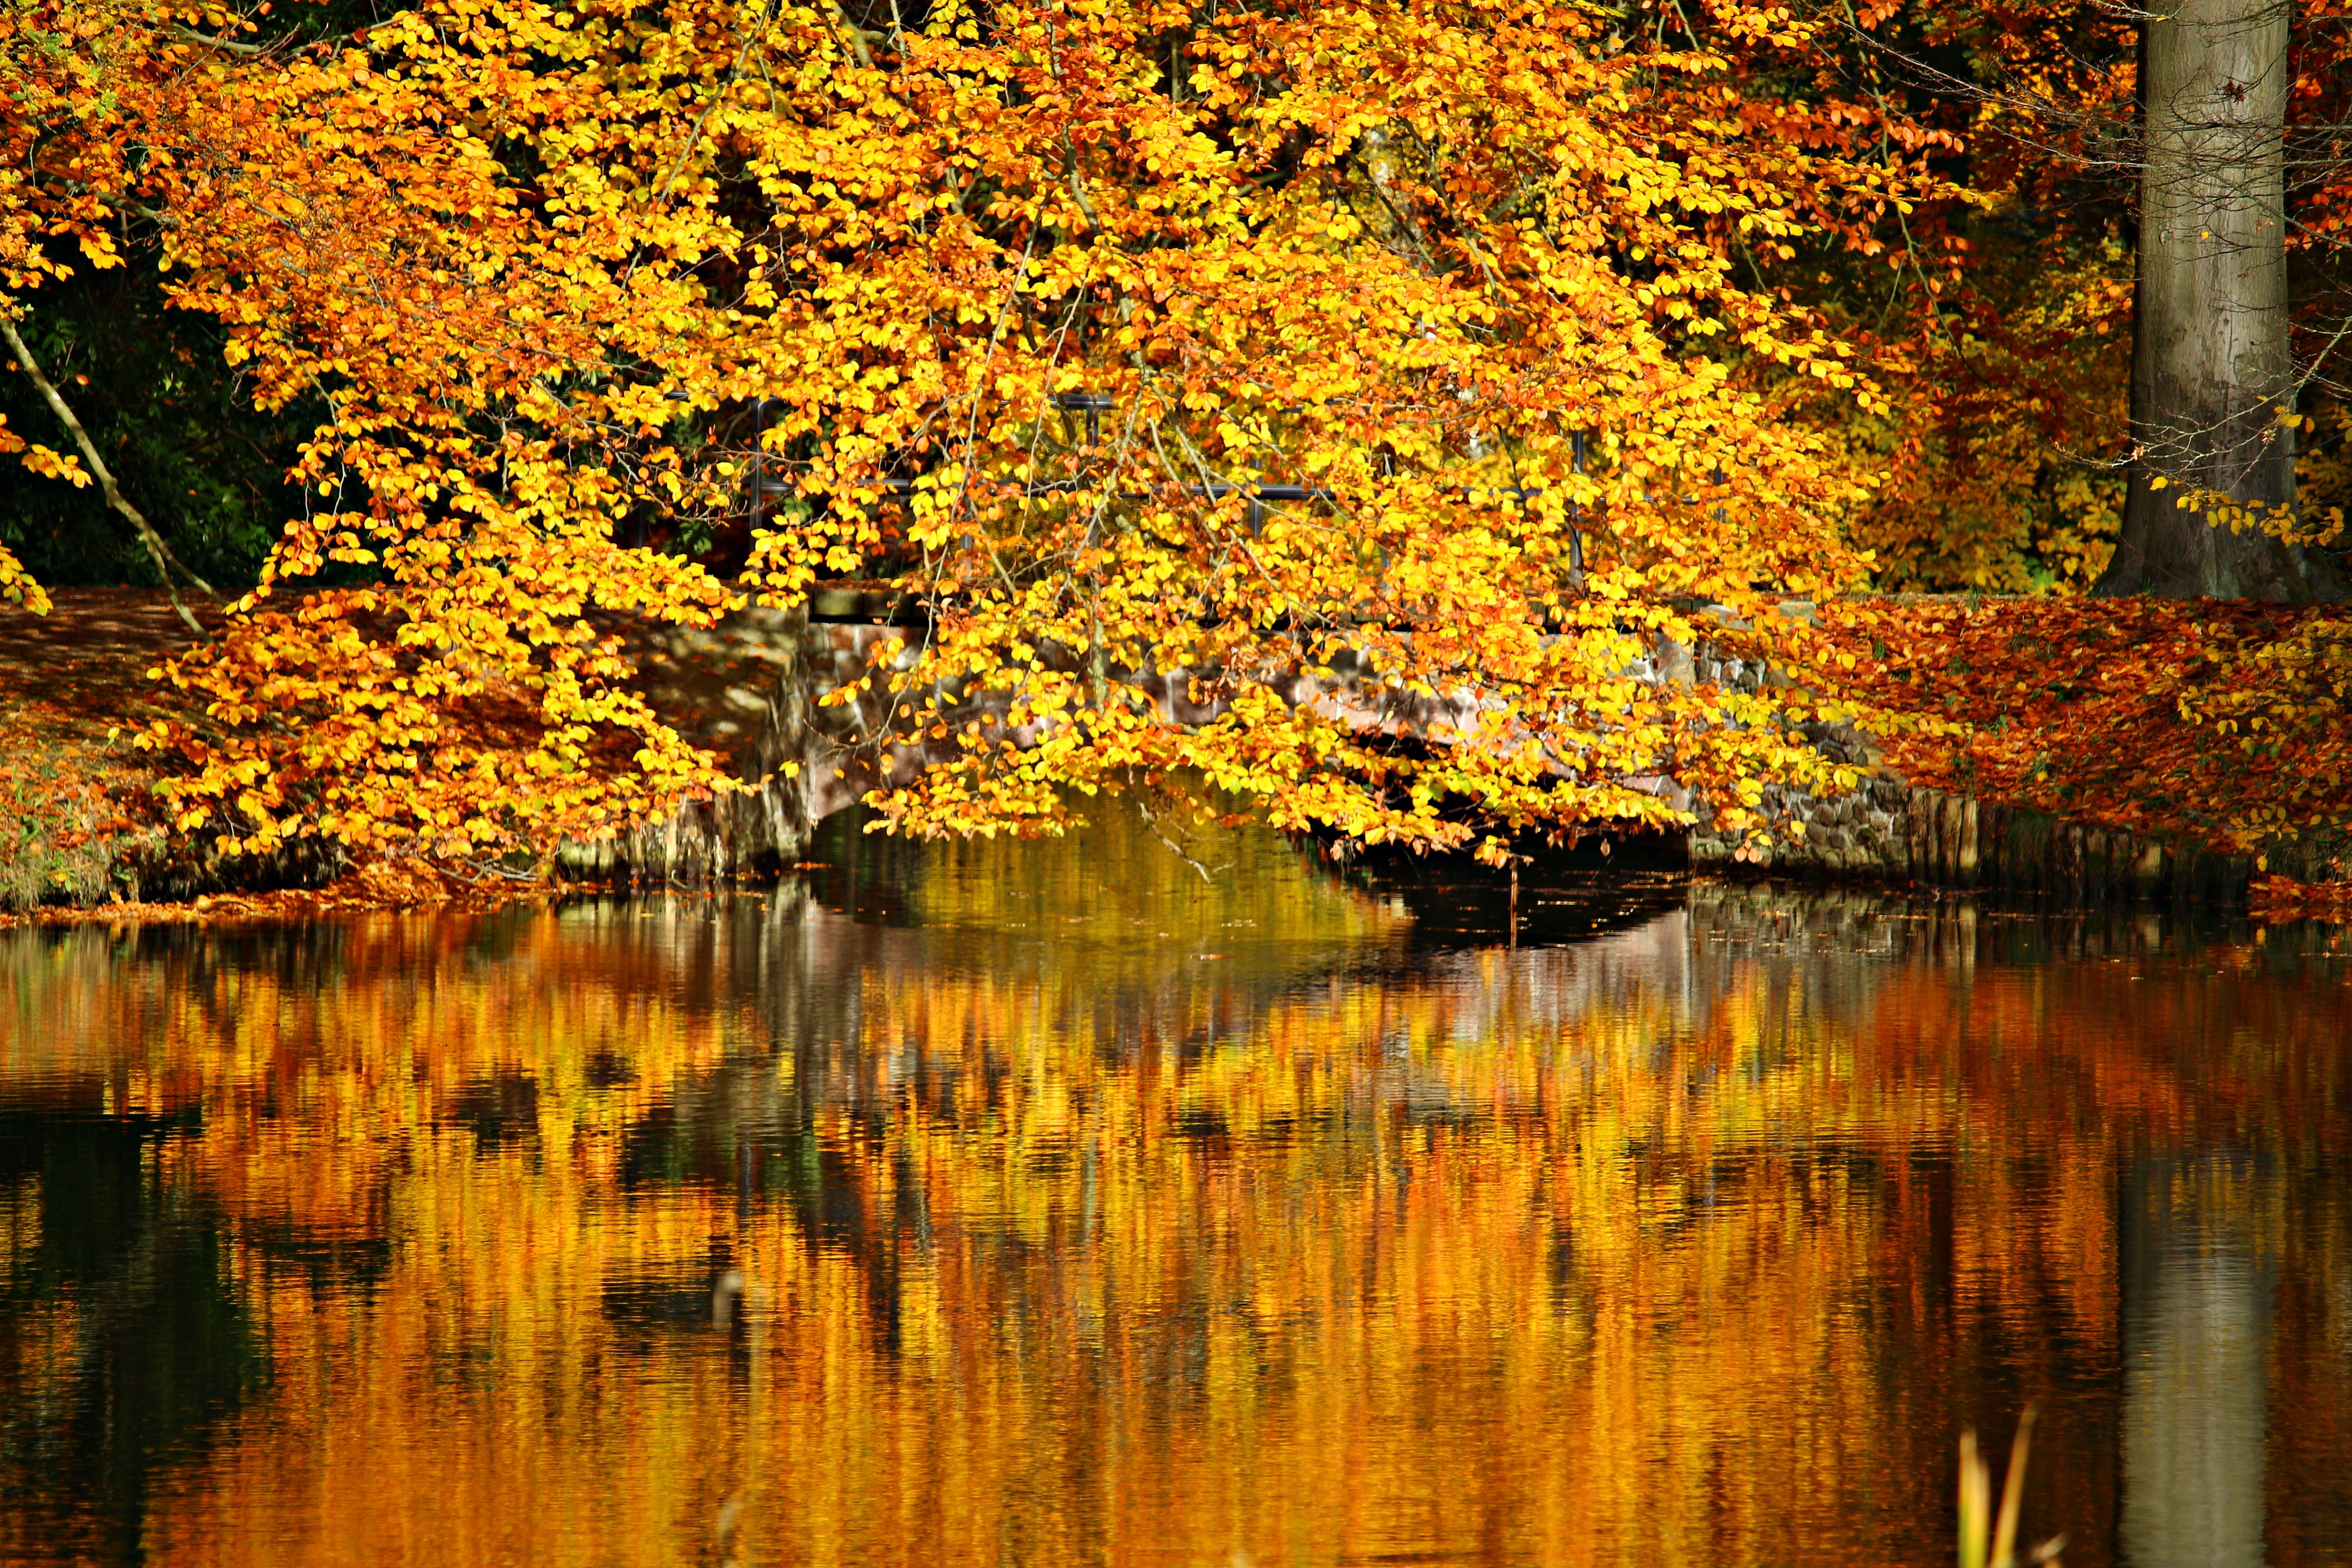 Japan Fall Colors Wallpaper Maple Tree And Body Of Water Photo 183 Free Stock Photo